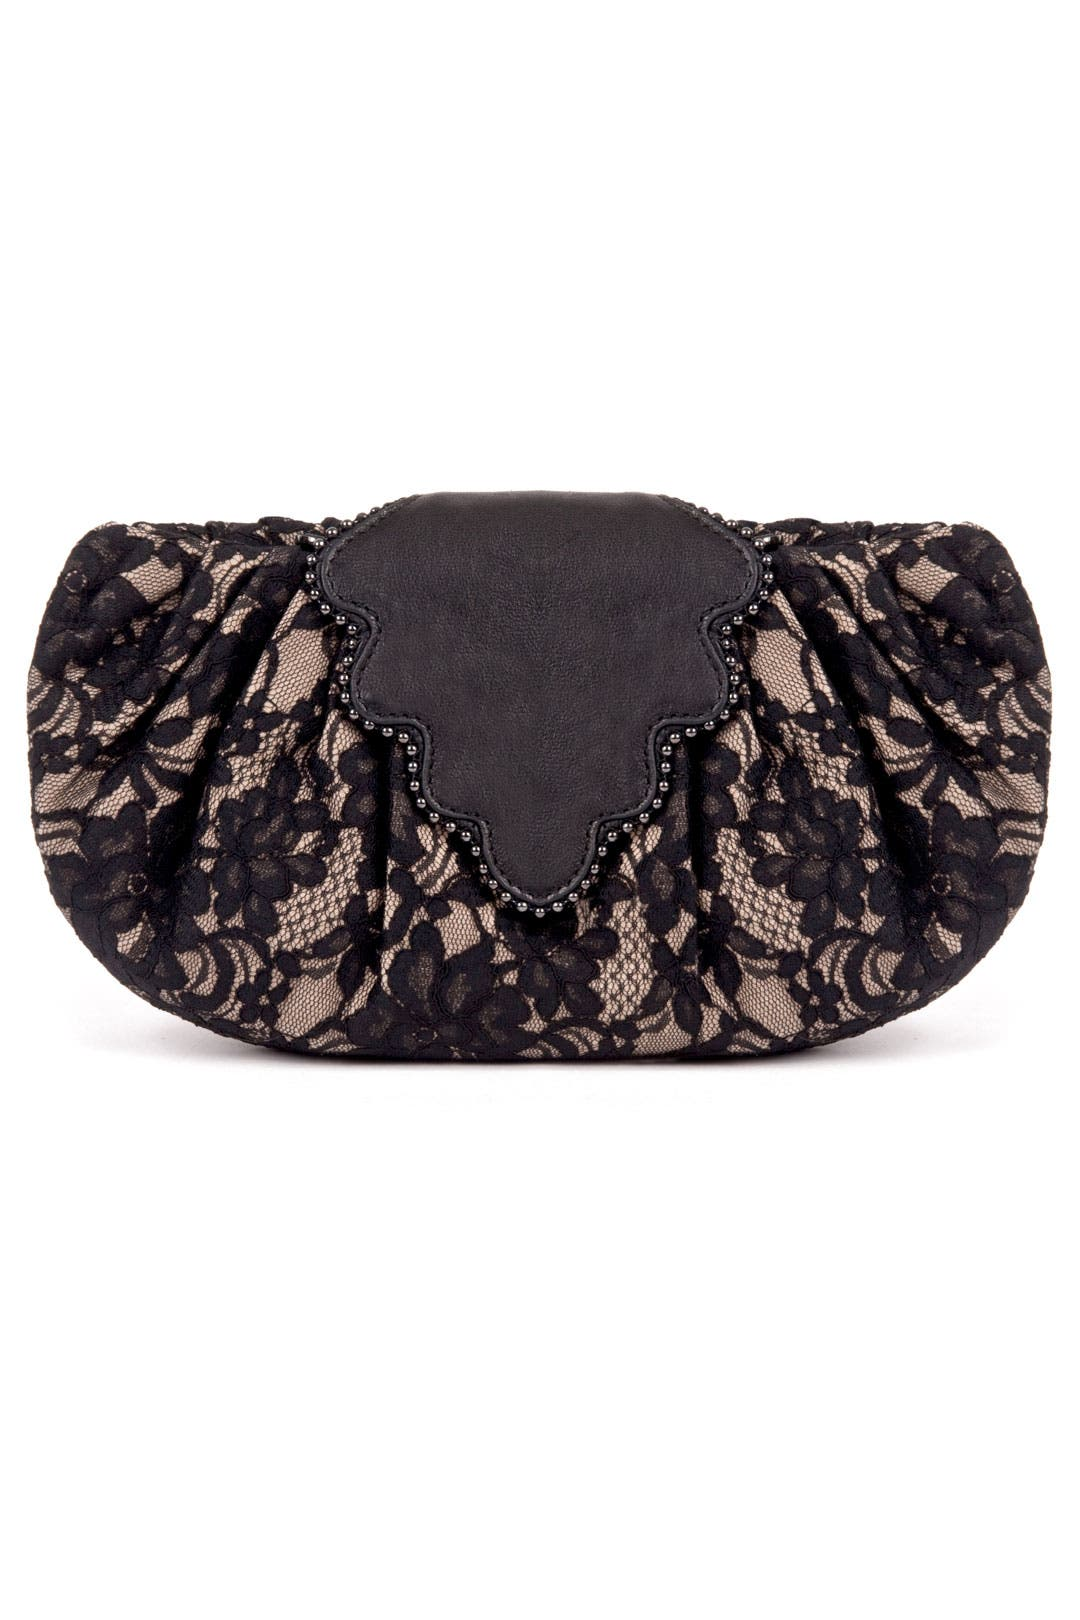 Belle Evening Lace Clutch by Diane von Furstenberg Handbags